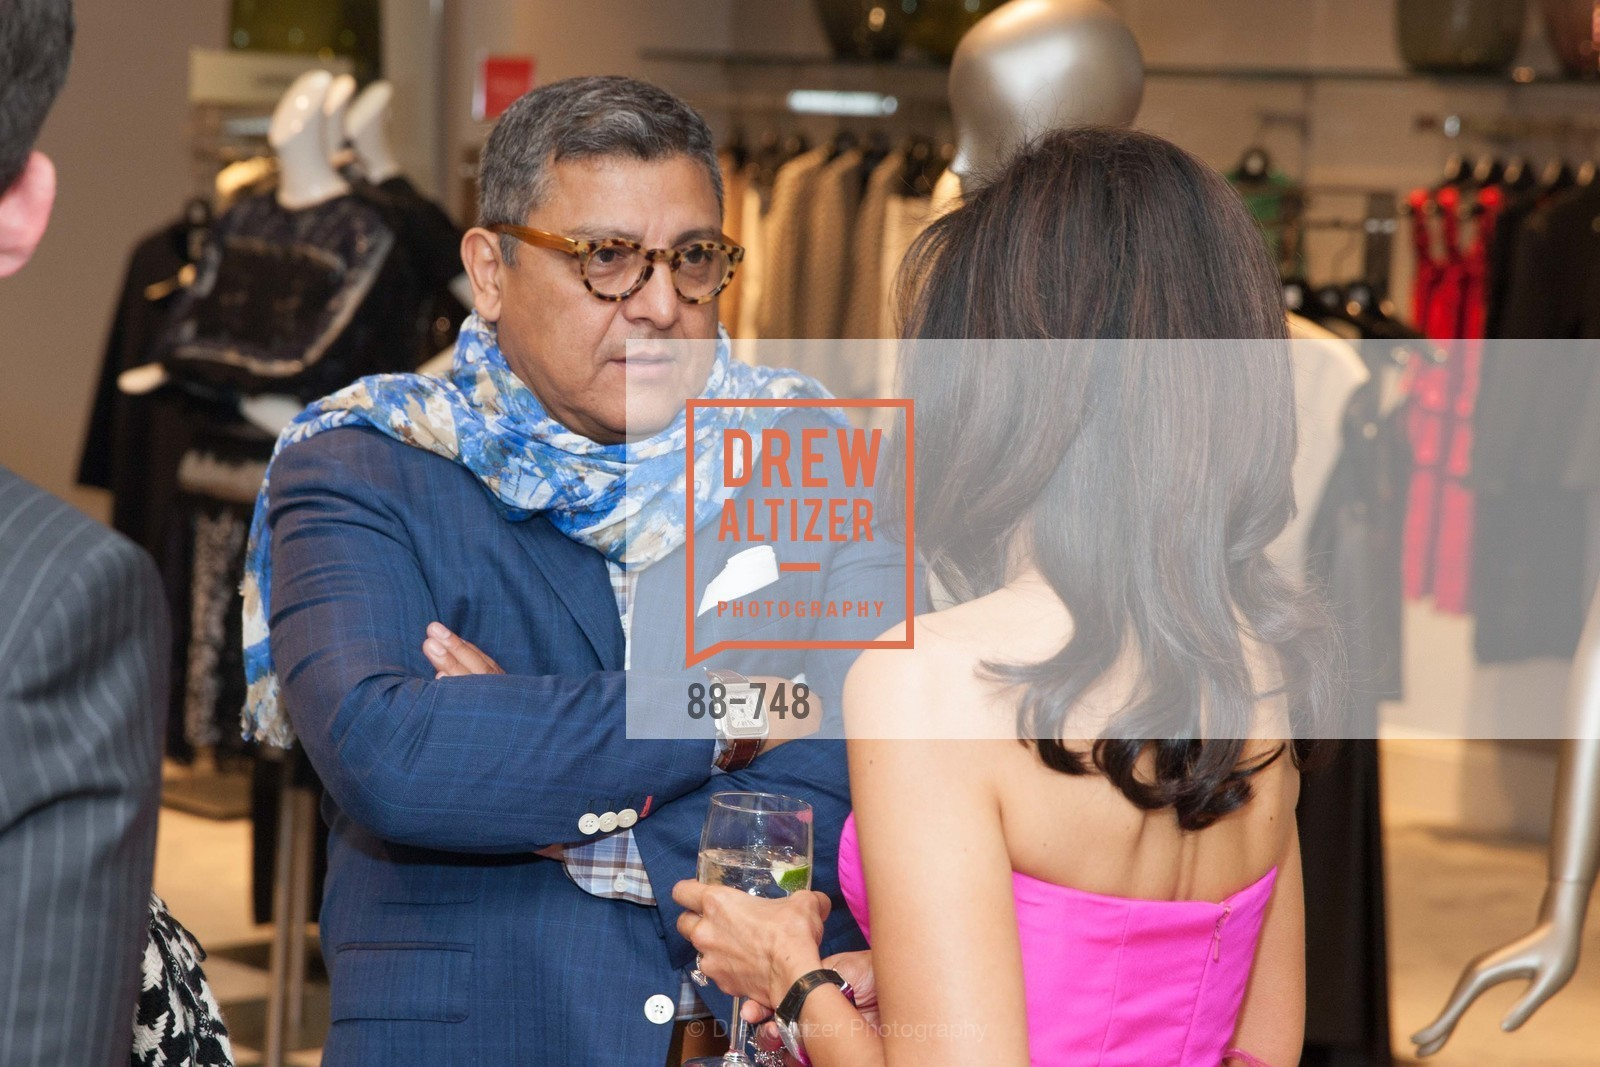 Riccardo Benavides, PETER COPPING'S Personal Appearance at SAKS FIFTH AVENUE, US, May 22nd, 2015,Drew Altizer, Drew Altizer Photography, full-service agency, private events, San Francisco photographer, photographer california